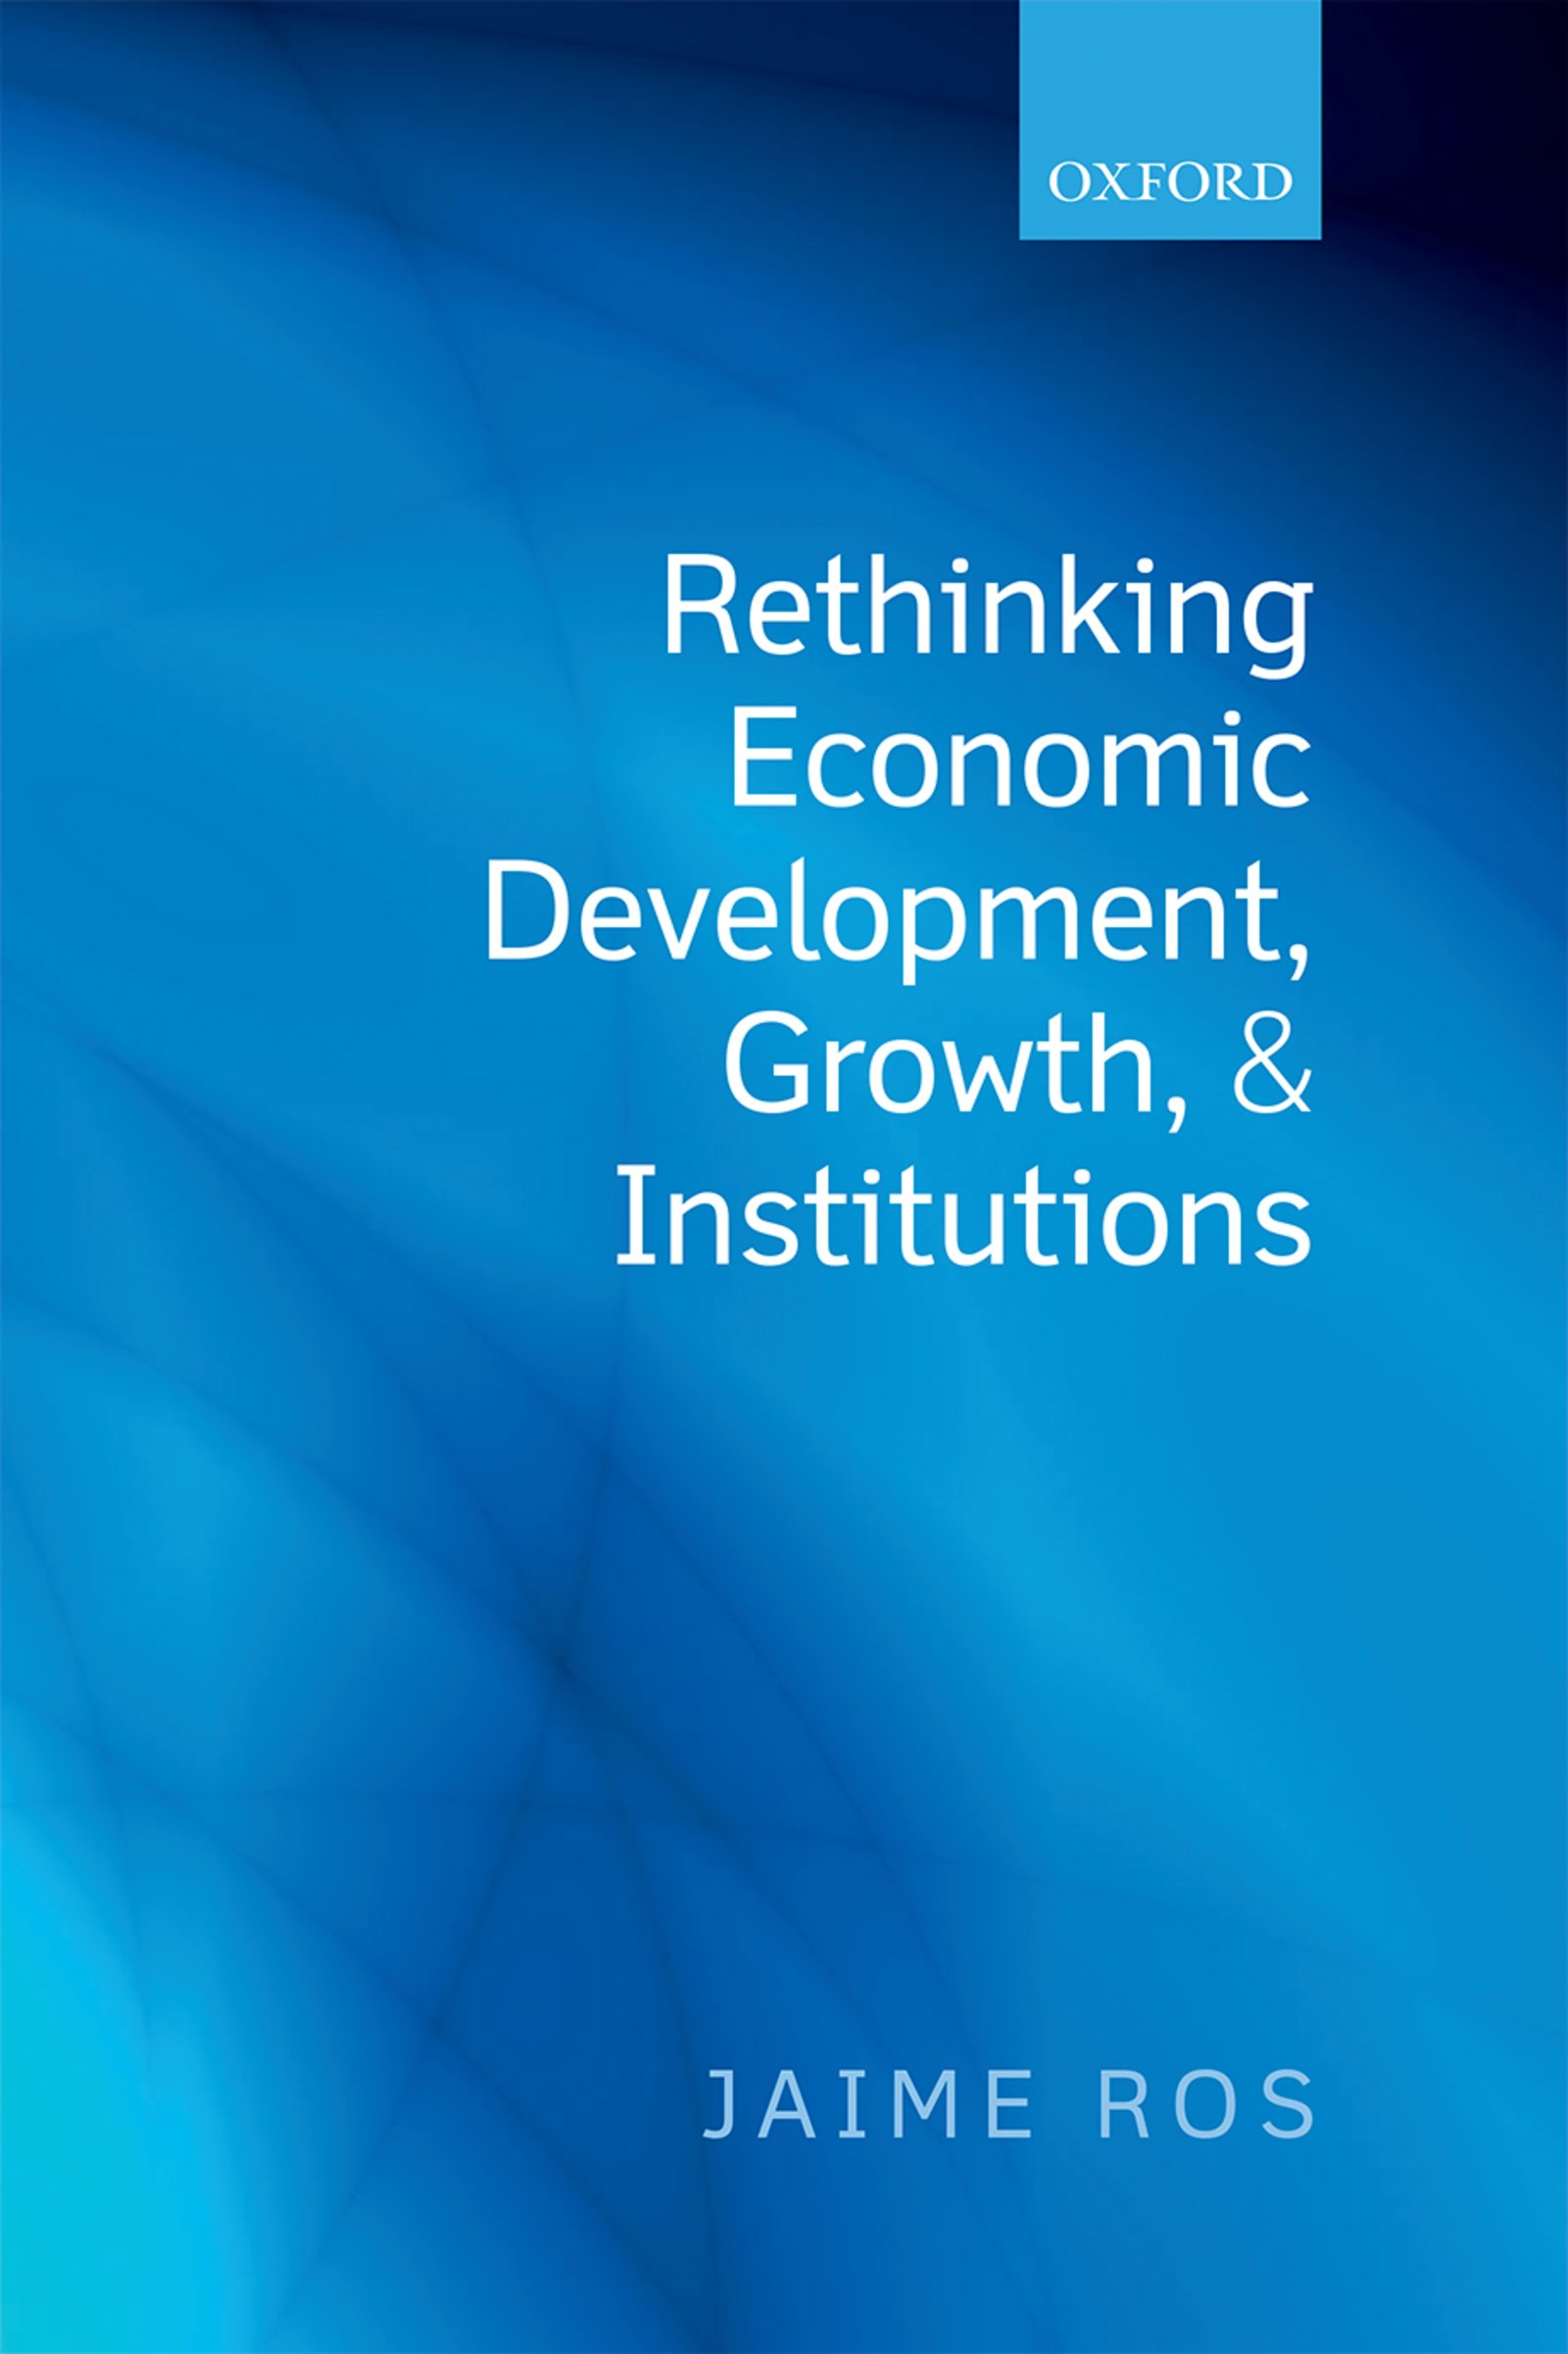 Download Ebook Rethinking Economic Development, Growth, and Institutions by Jaime Ros Pdf